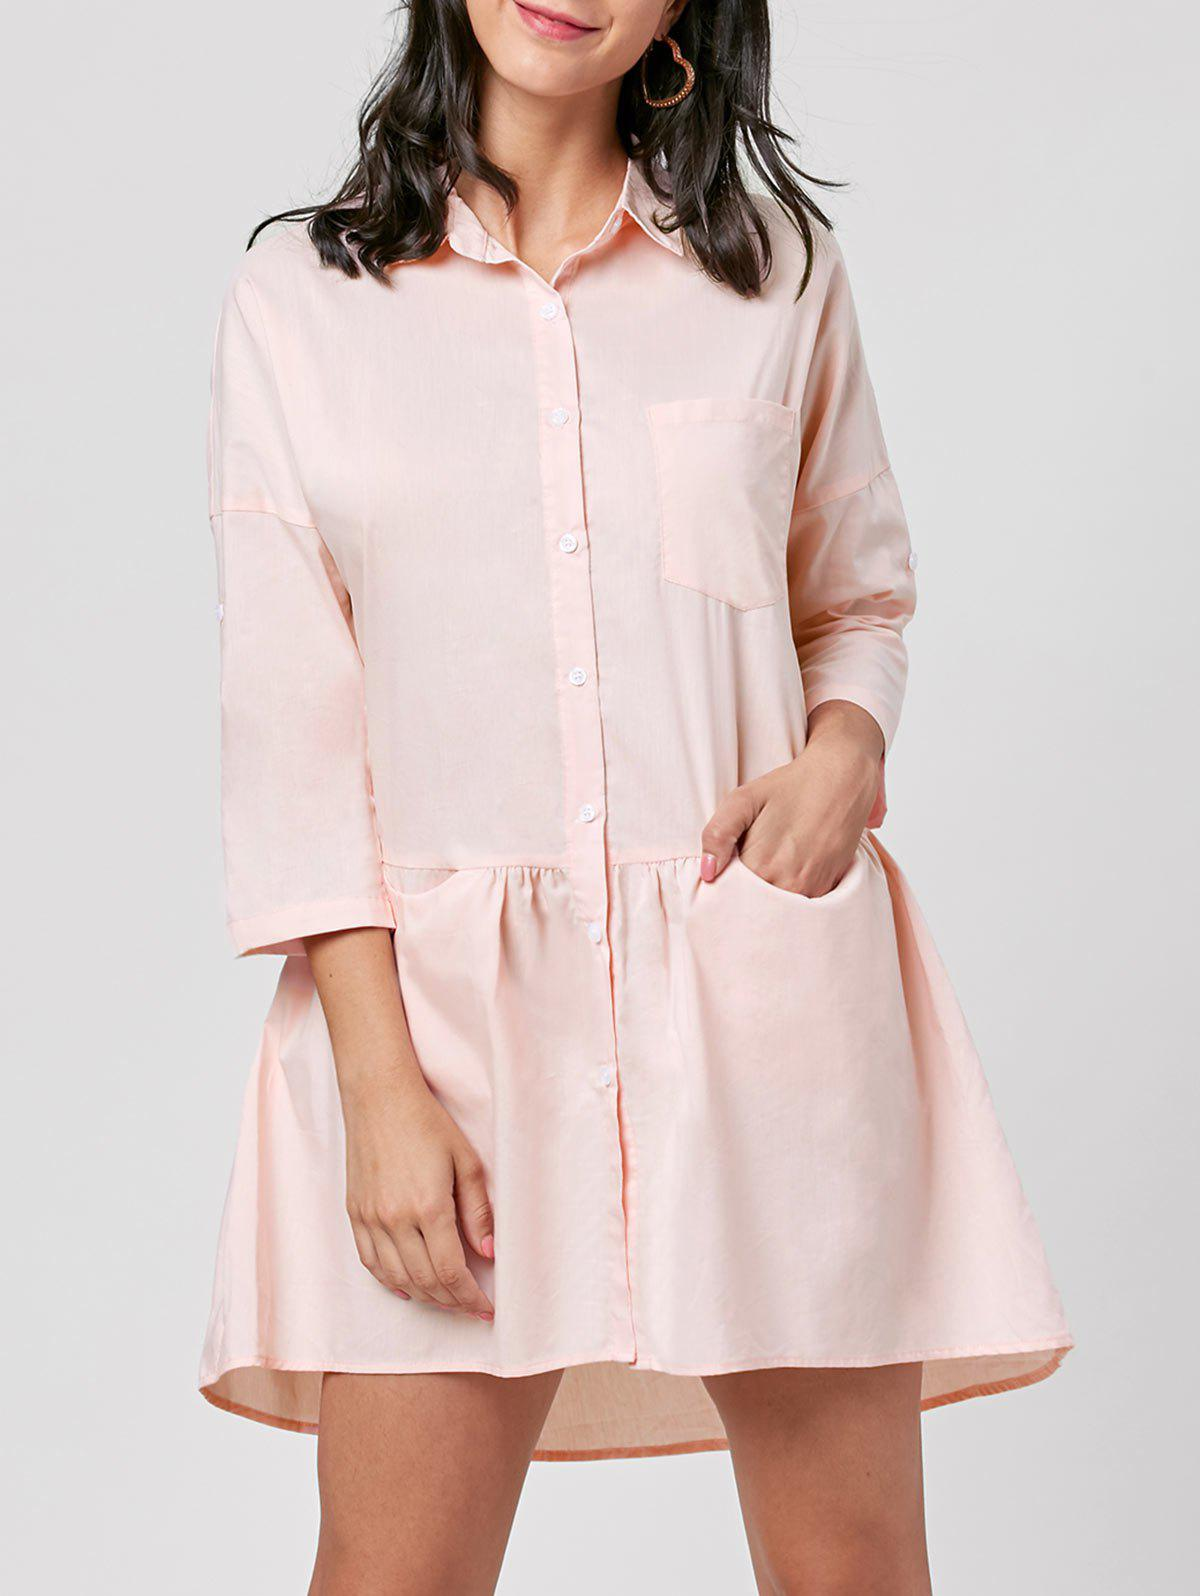 Patch Pocket Mini Shirt Dress - LIGHT PINK L